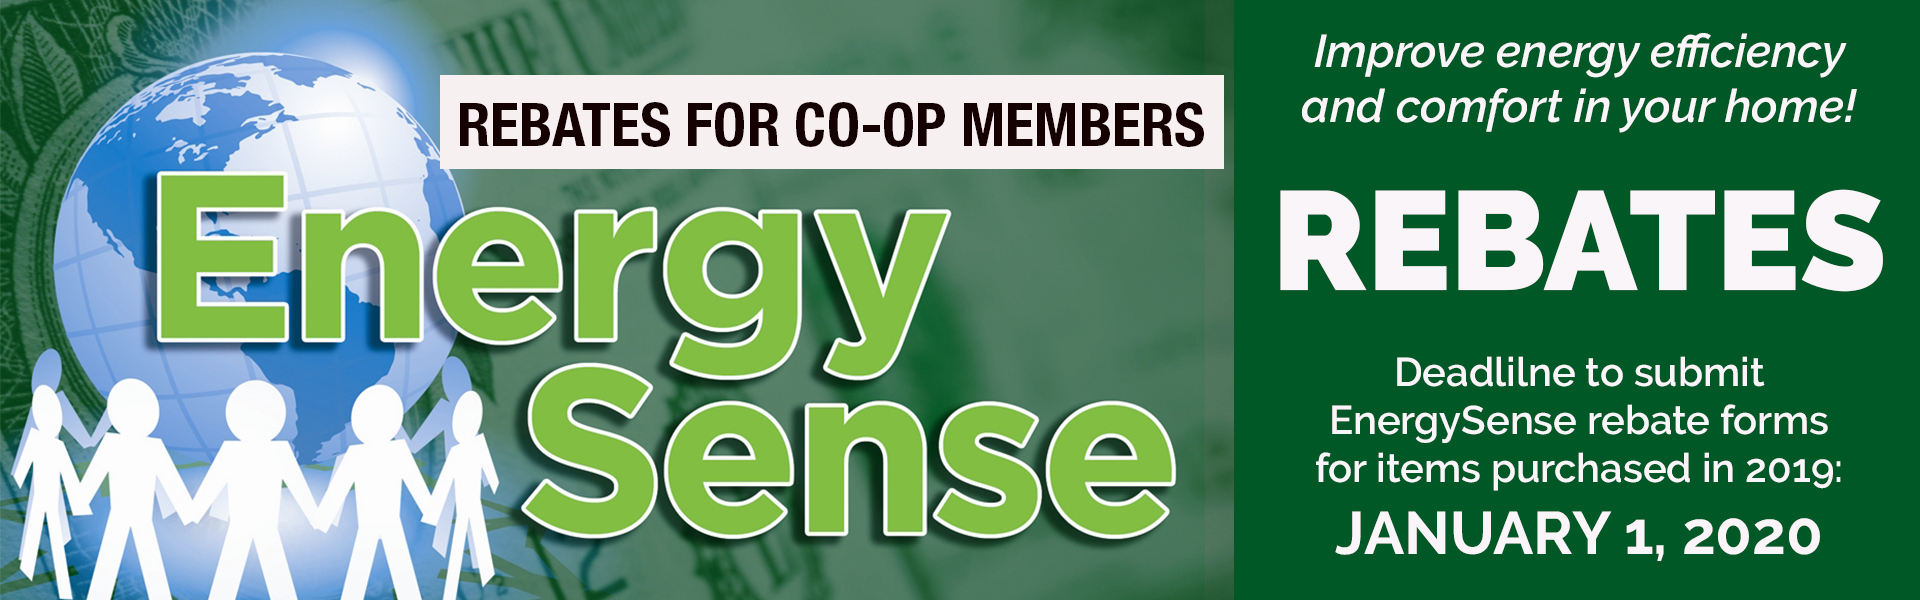 Get co-op rebates to improve energy efficiency in your home